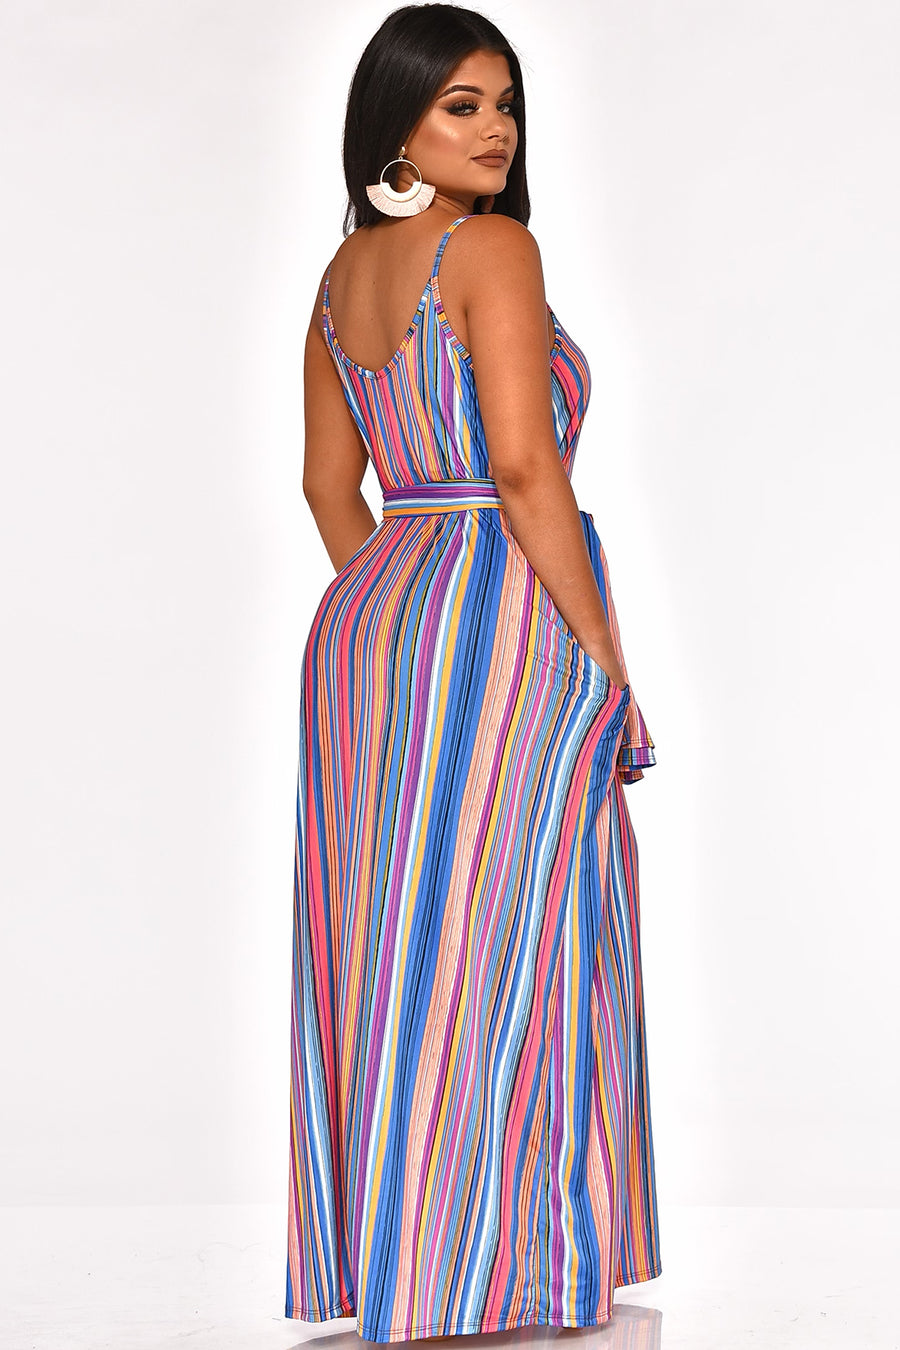 FULL OF FUN MAXI DRESS